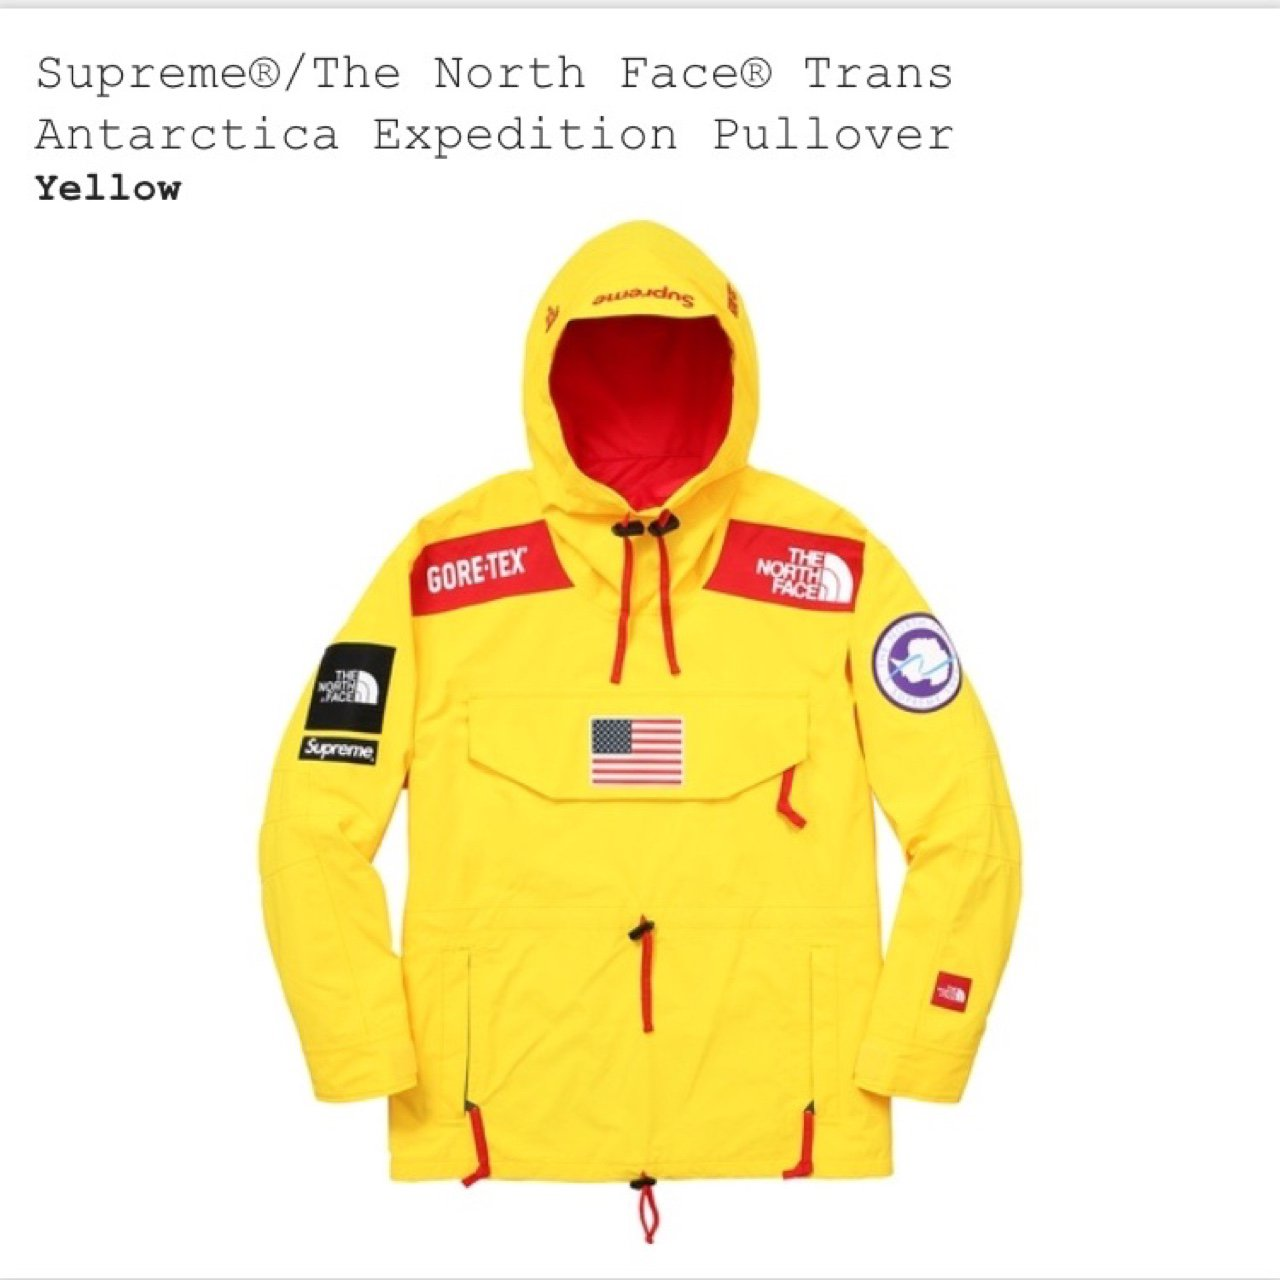 Olliejweaver 2 Years Ago Bath Uk Brand New Supreme X The North Face Gore Tex